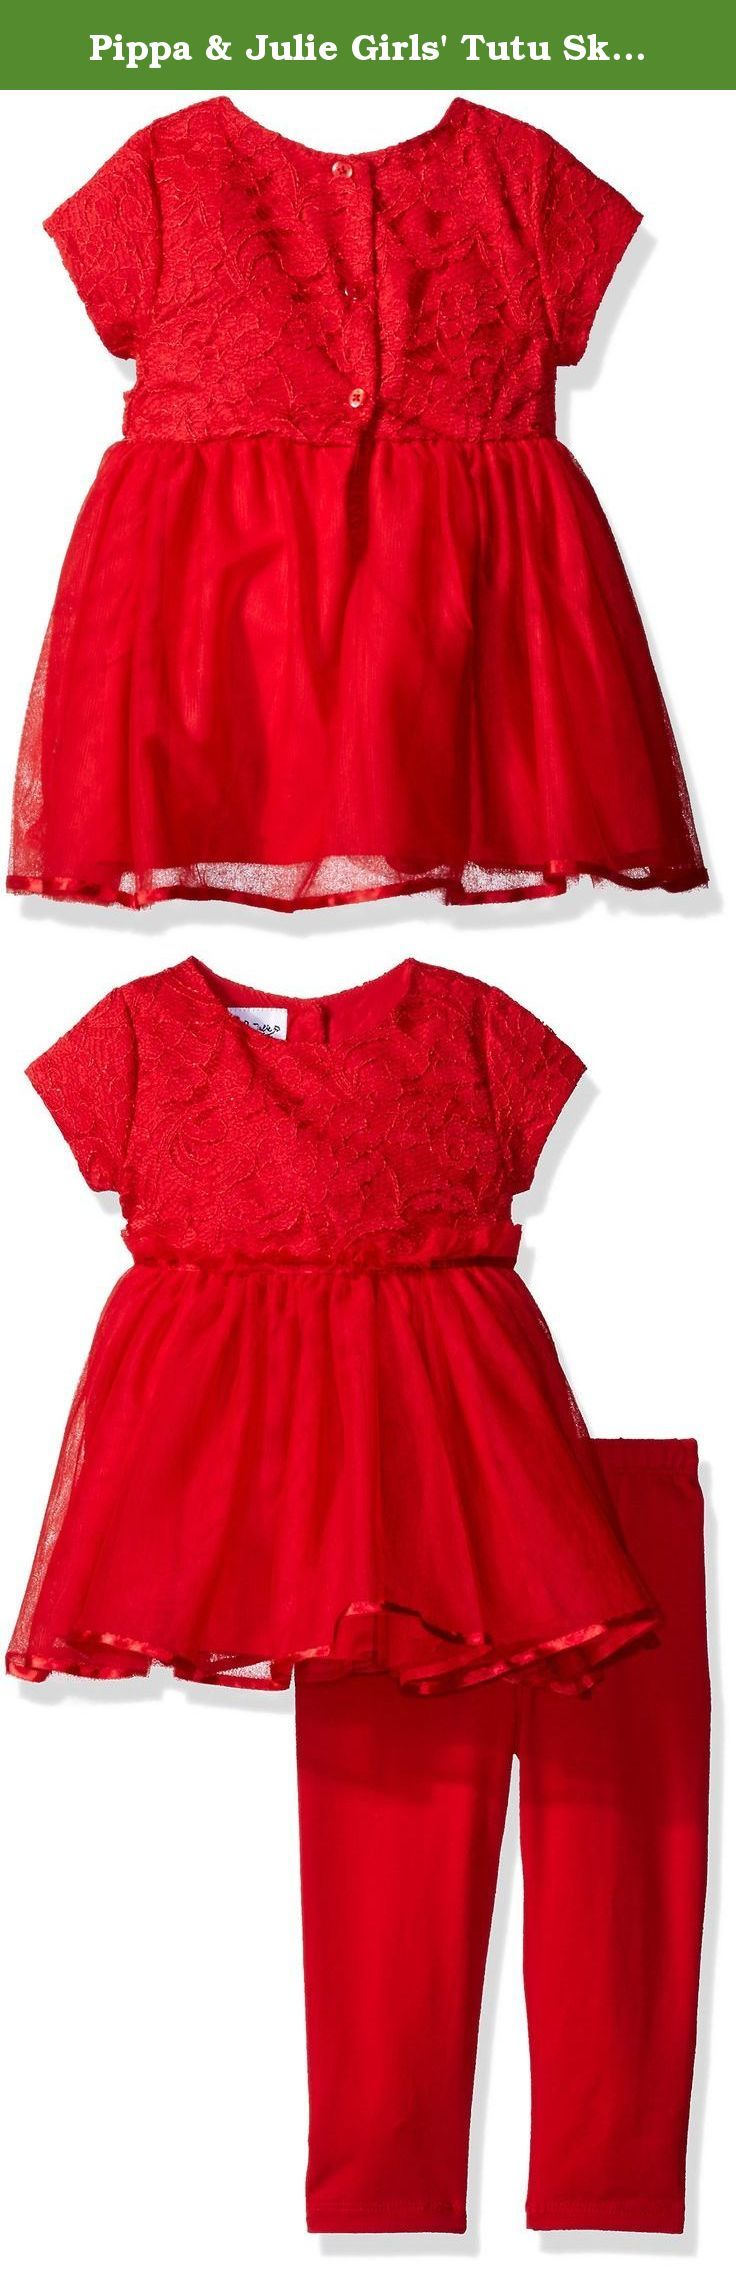 Pippa & Julie Girls' Tutu Skirt Play Set, Red, 0/3M. This adorable play set has a tunic top with a layered mesh tutu skirt and soft coordinating leggings.